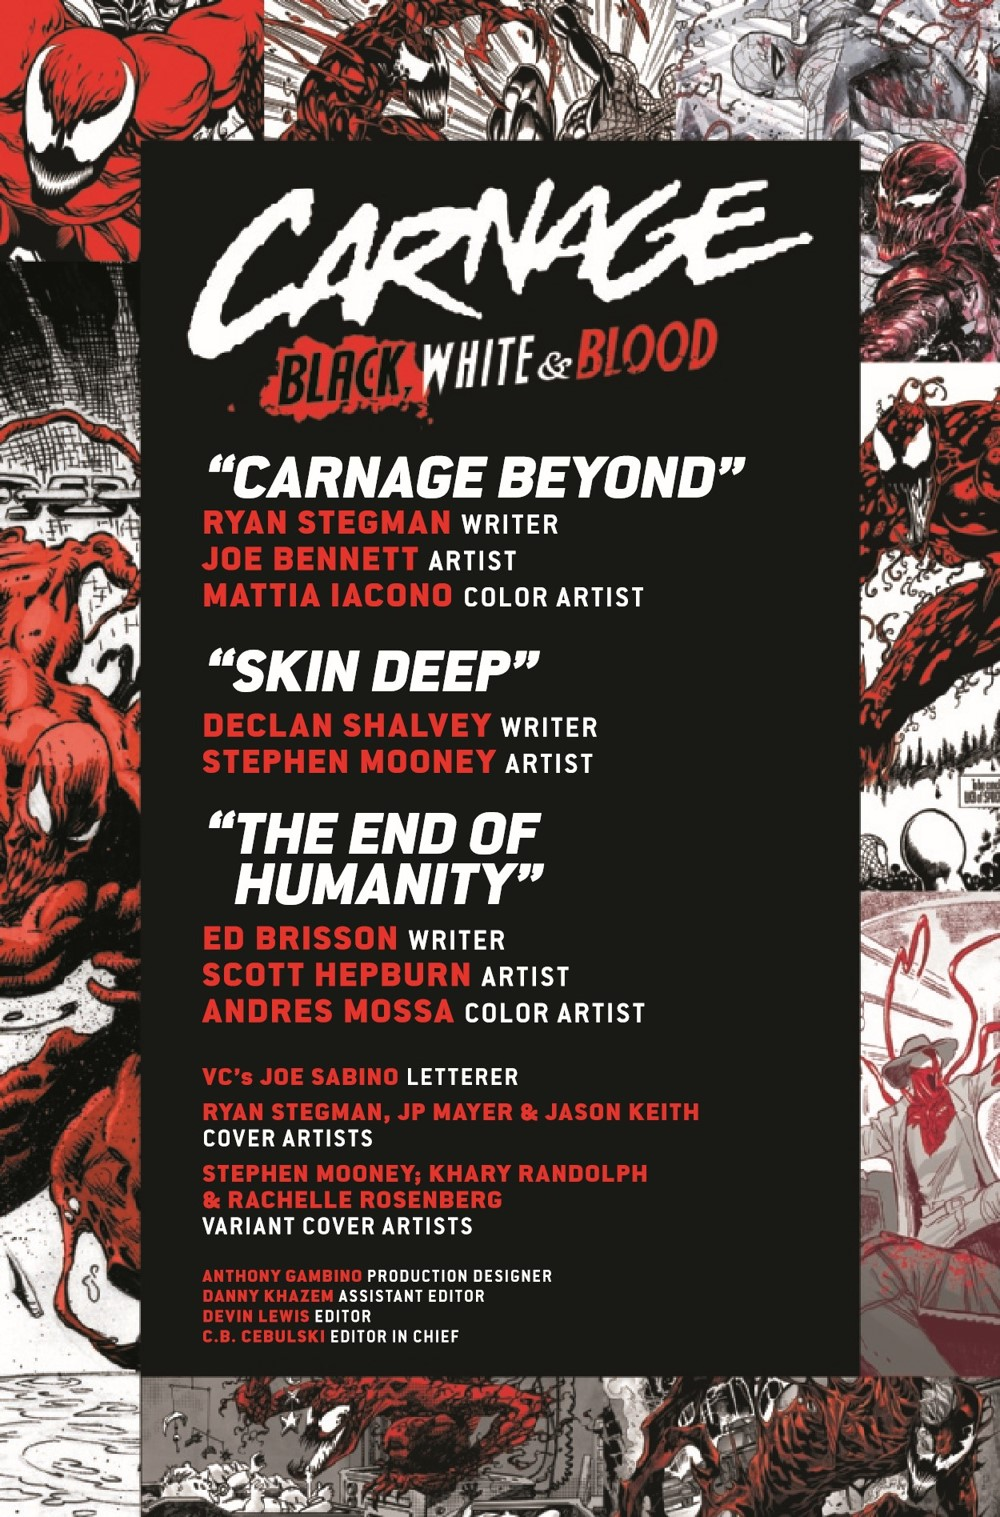 CARNBLKWHBL2021004_Preview-2 ComicList Previews: CARNAGE BLACK WHITE AND BLOOD #4 (OF 4)